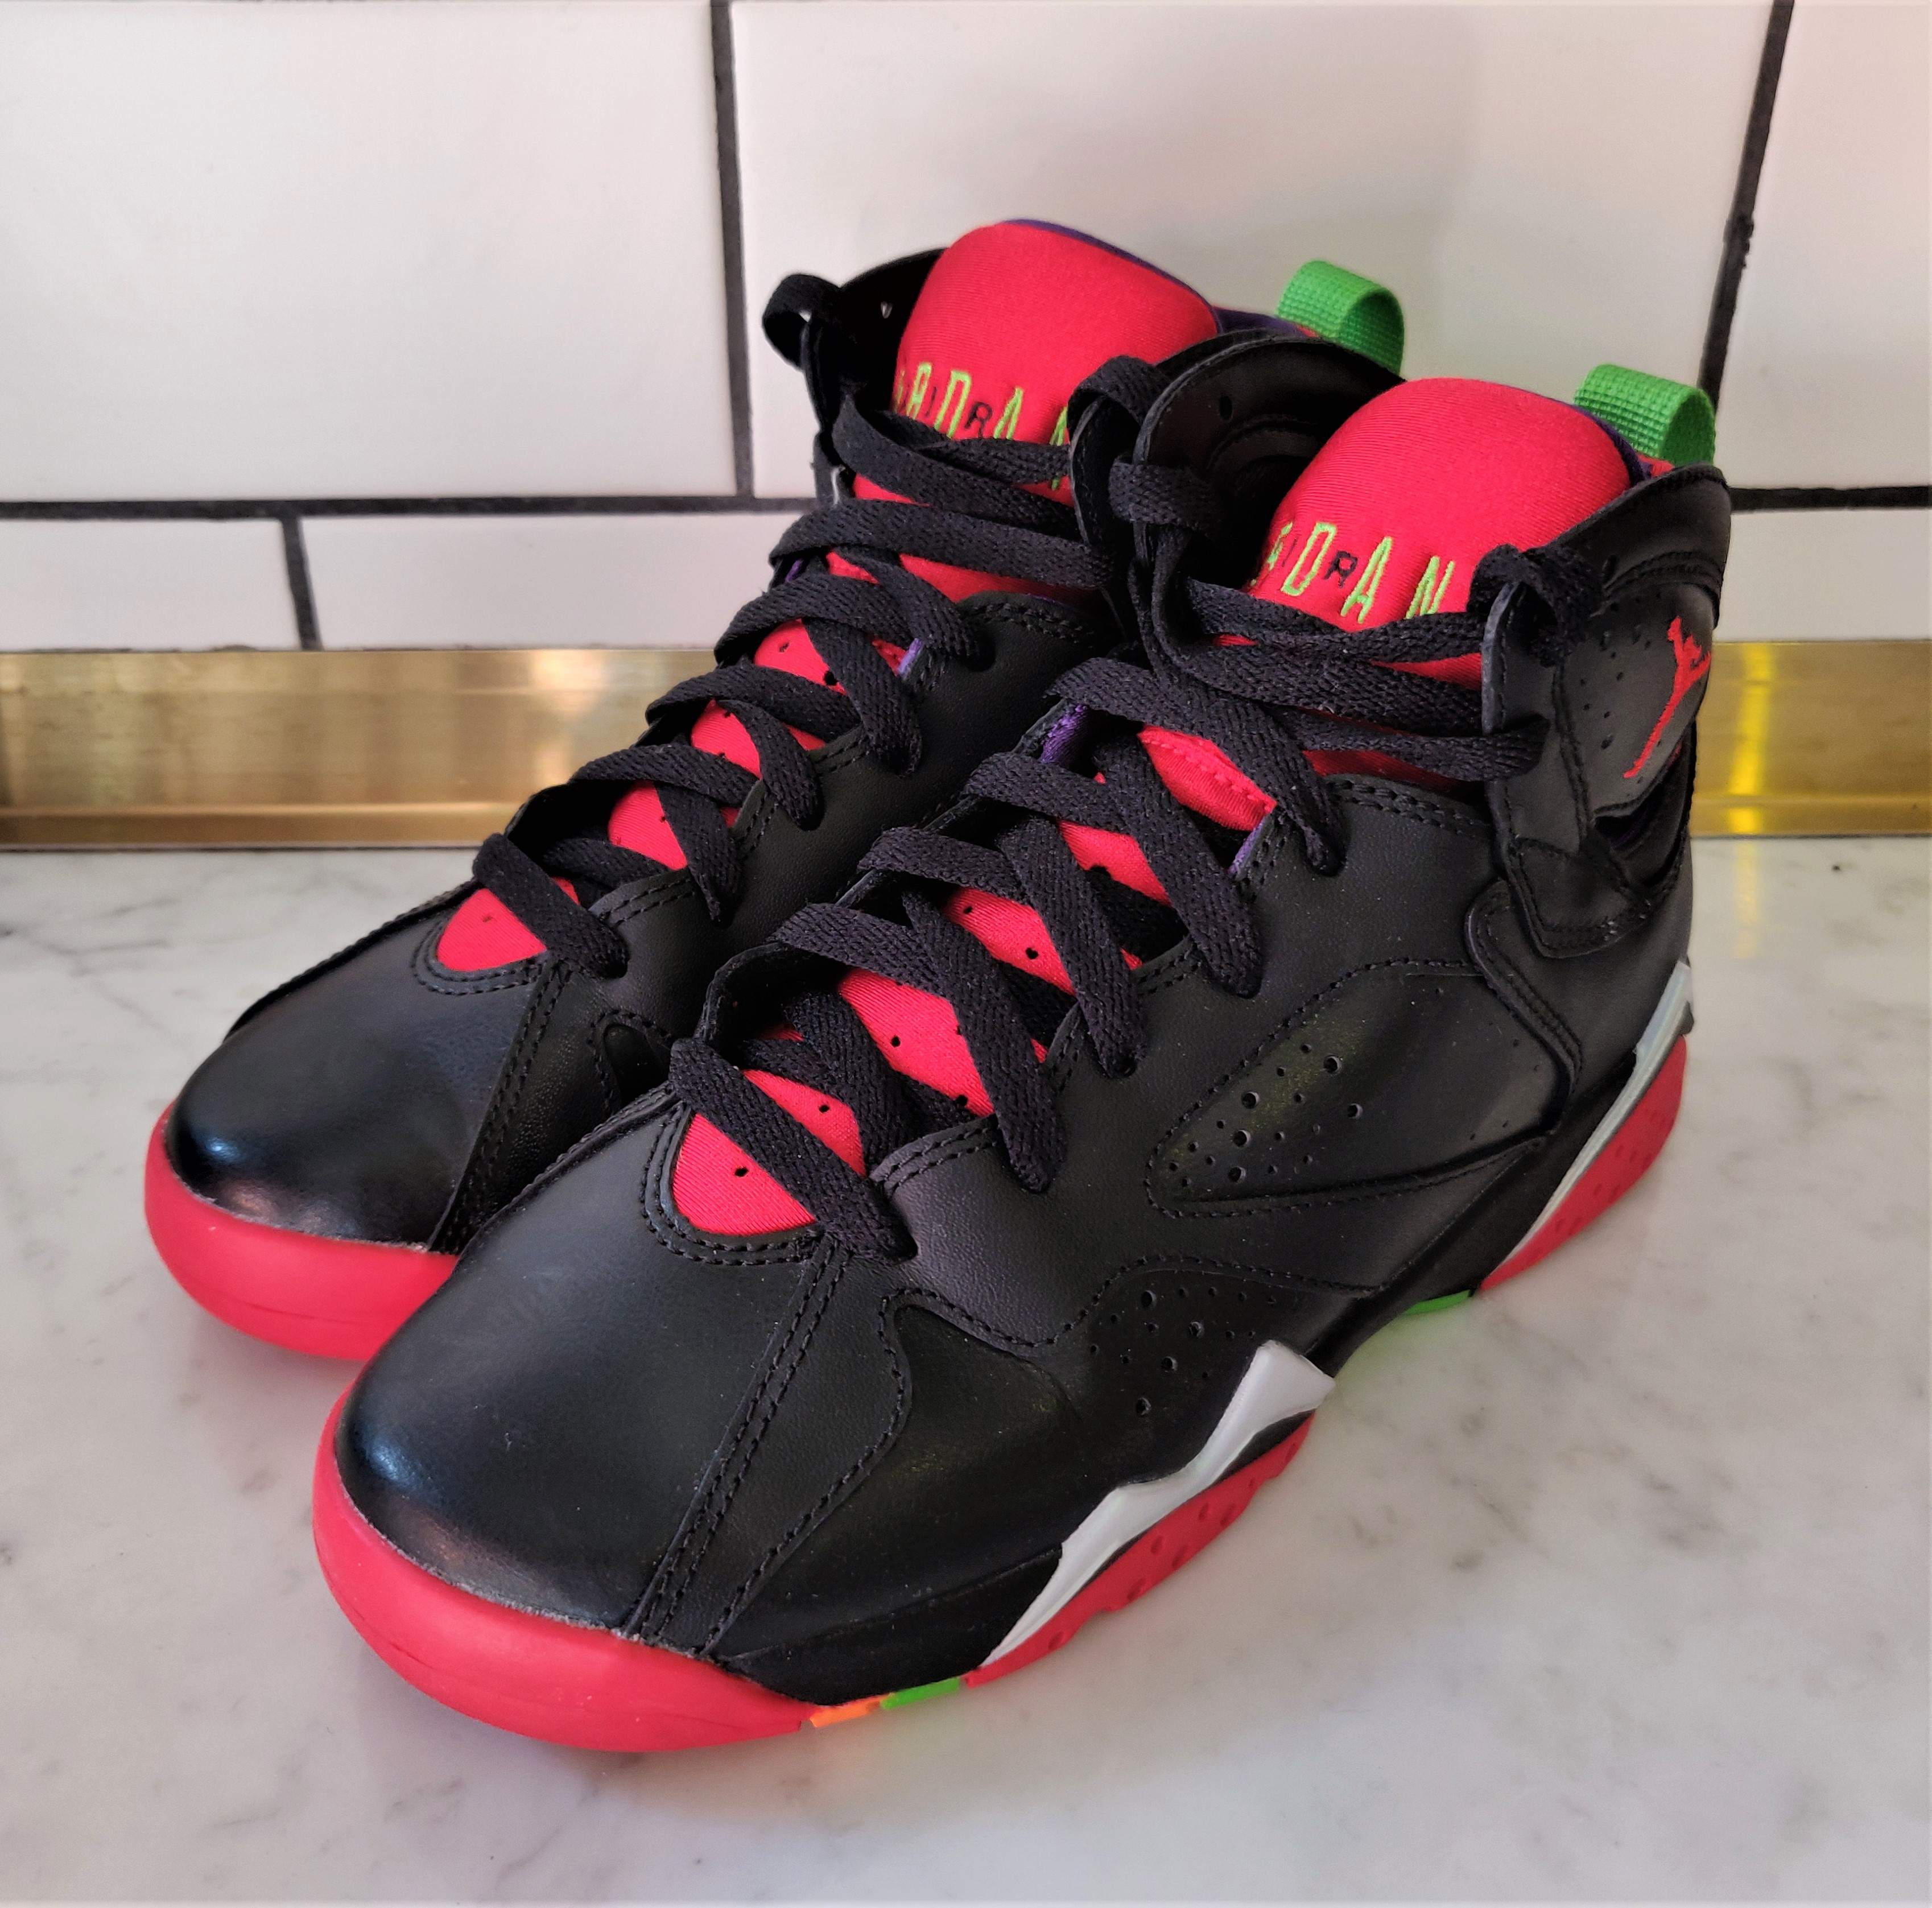 Jordan 7 Retro Marvin the Martian GS